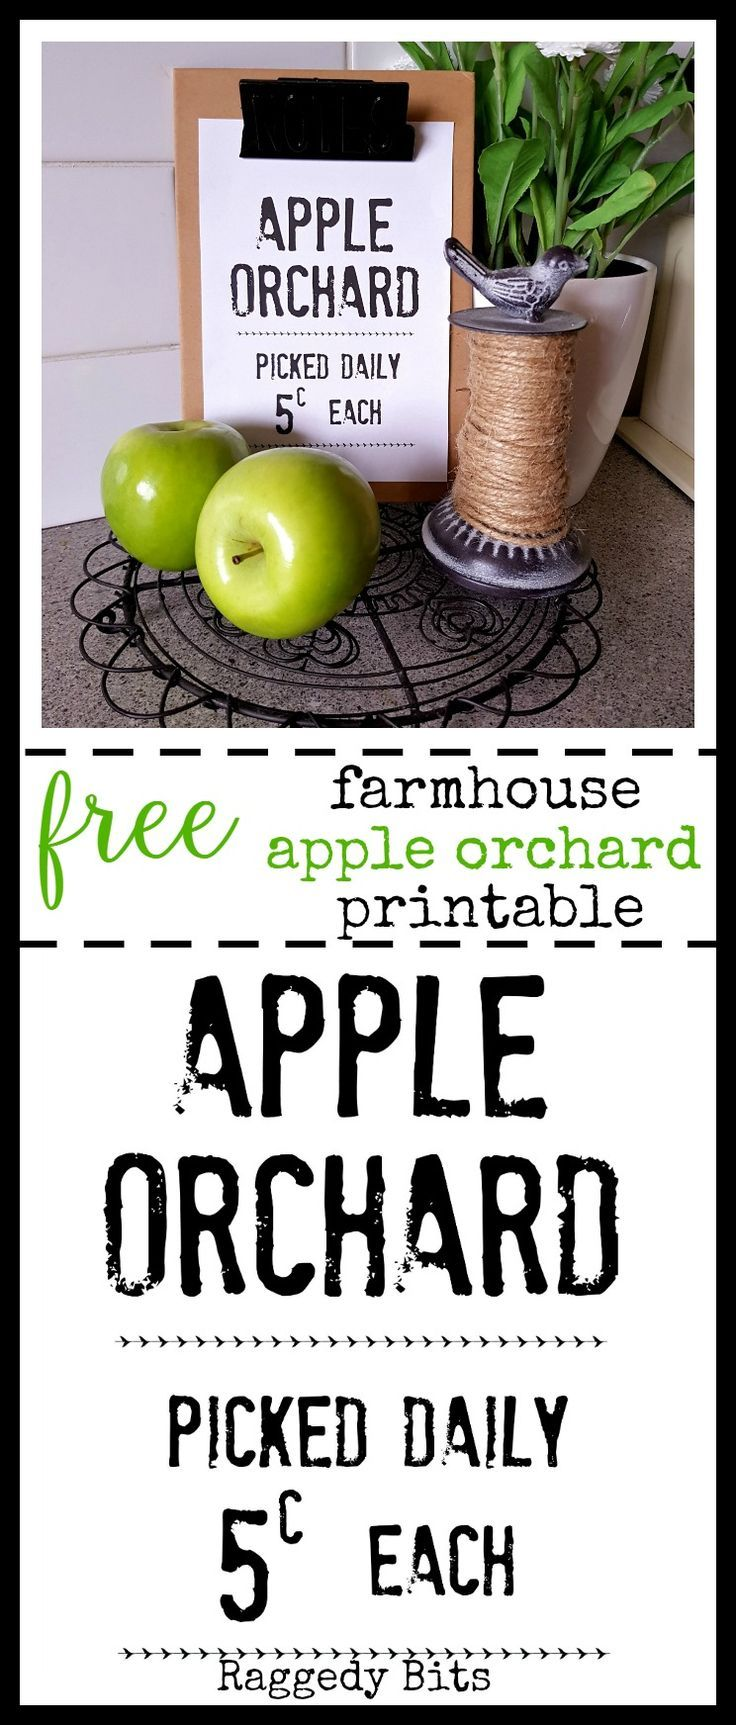 Be sure to grab your FREE Farmhouse Apple Orchard Printable to add some sweet…